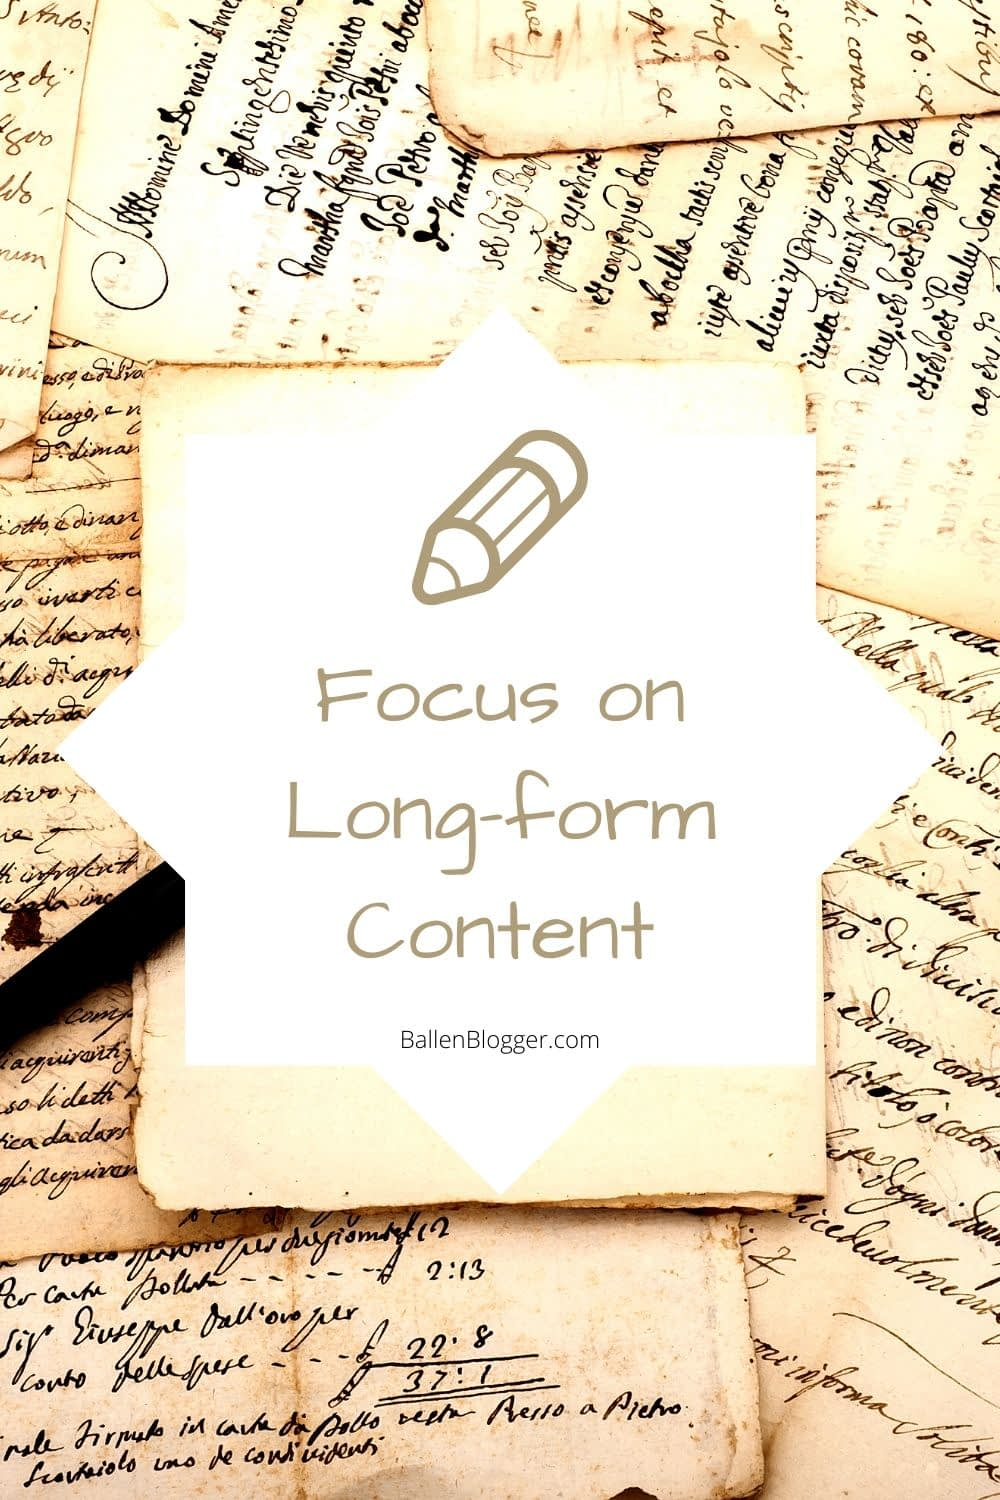 Creating long-form content can increase your website's dwell times. The more words a web page has, the longer it will take visitors to read.